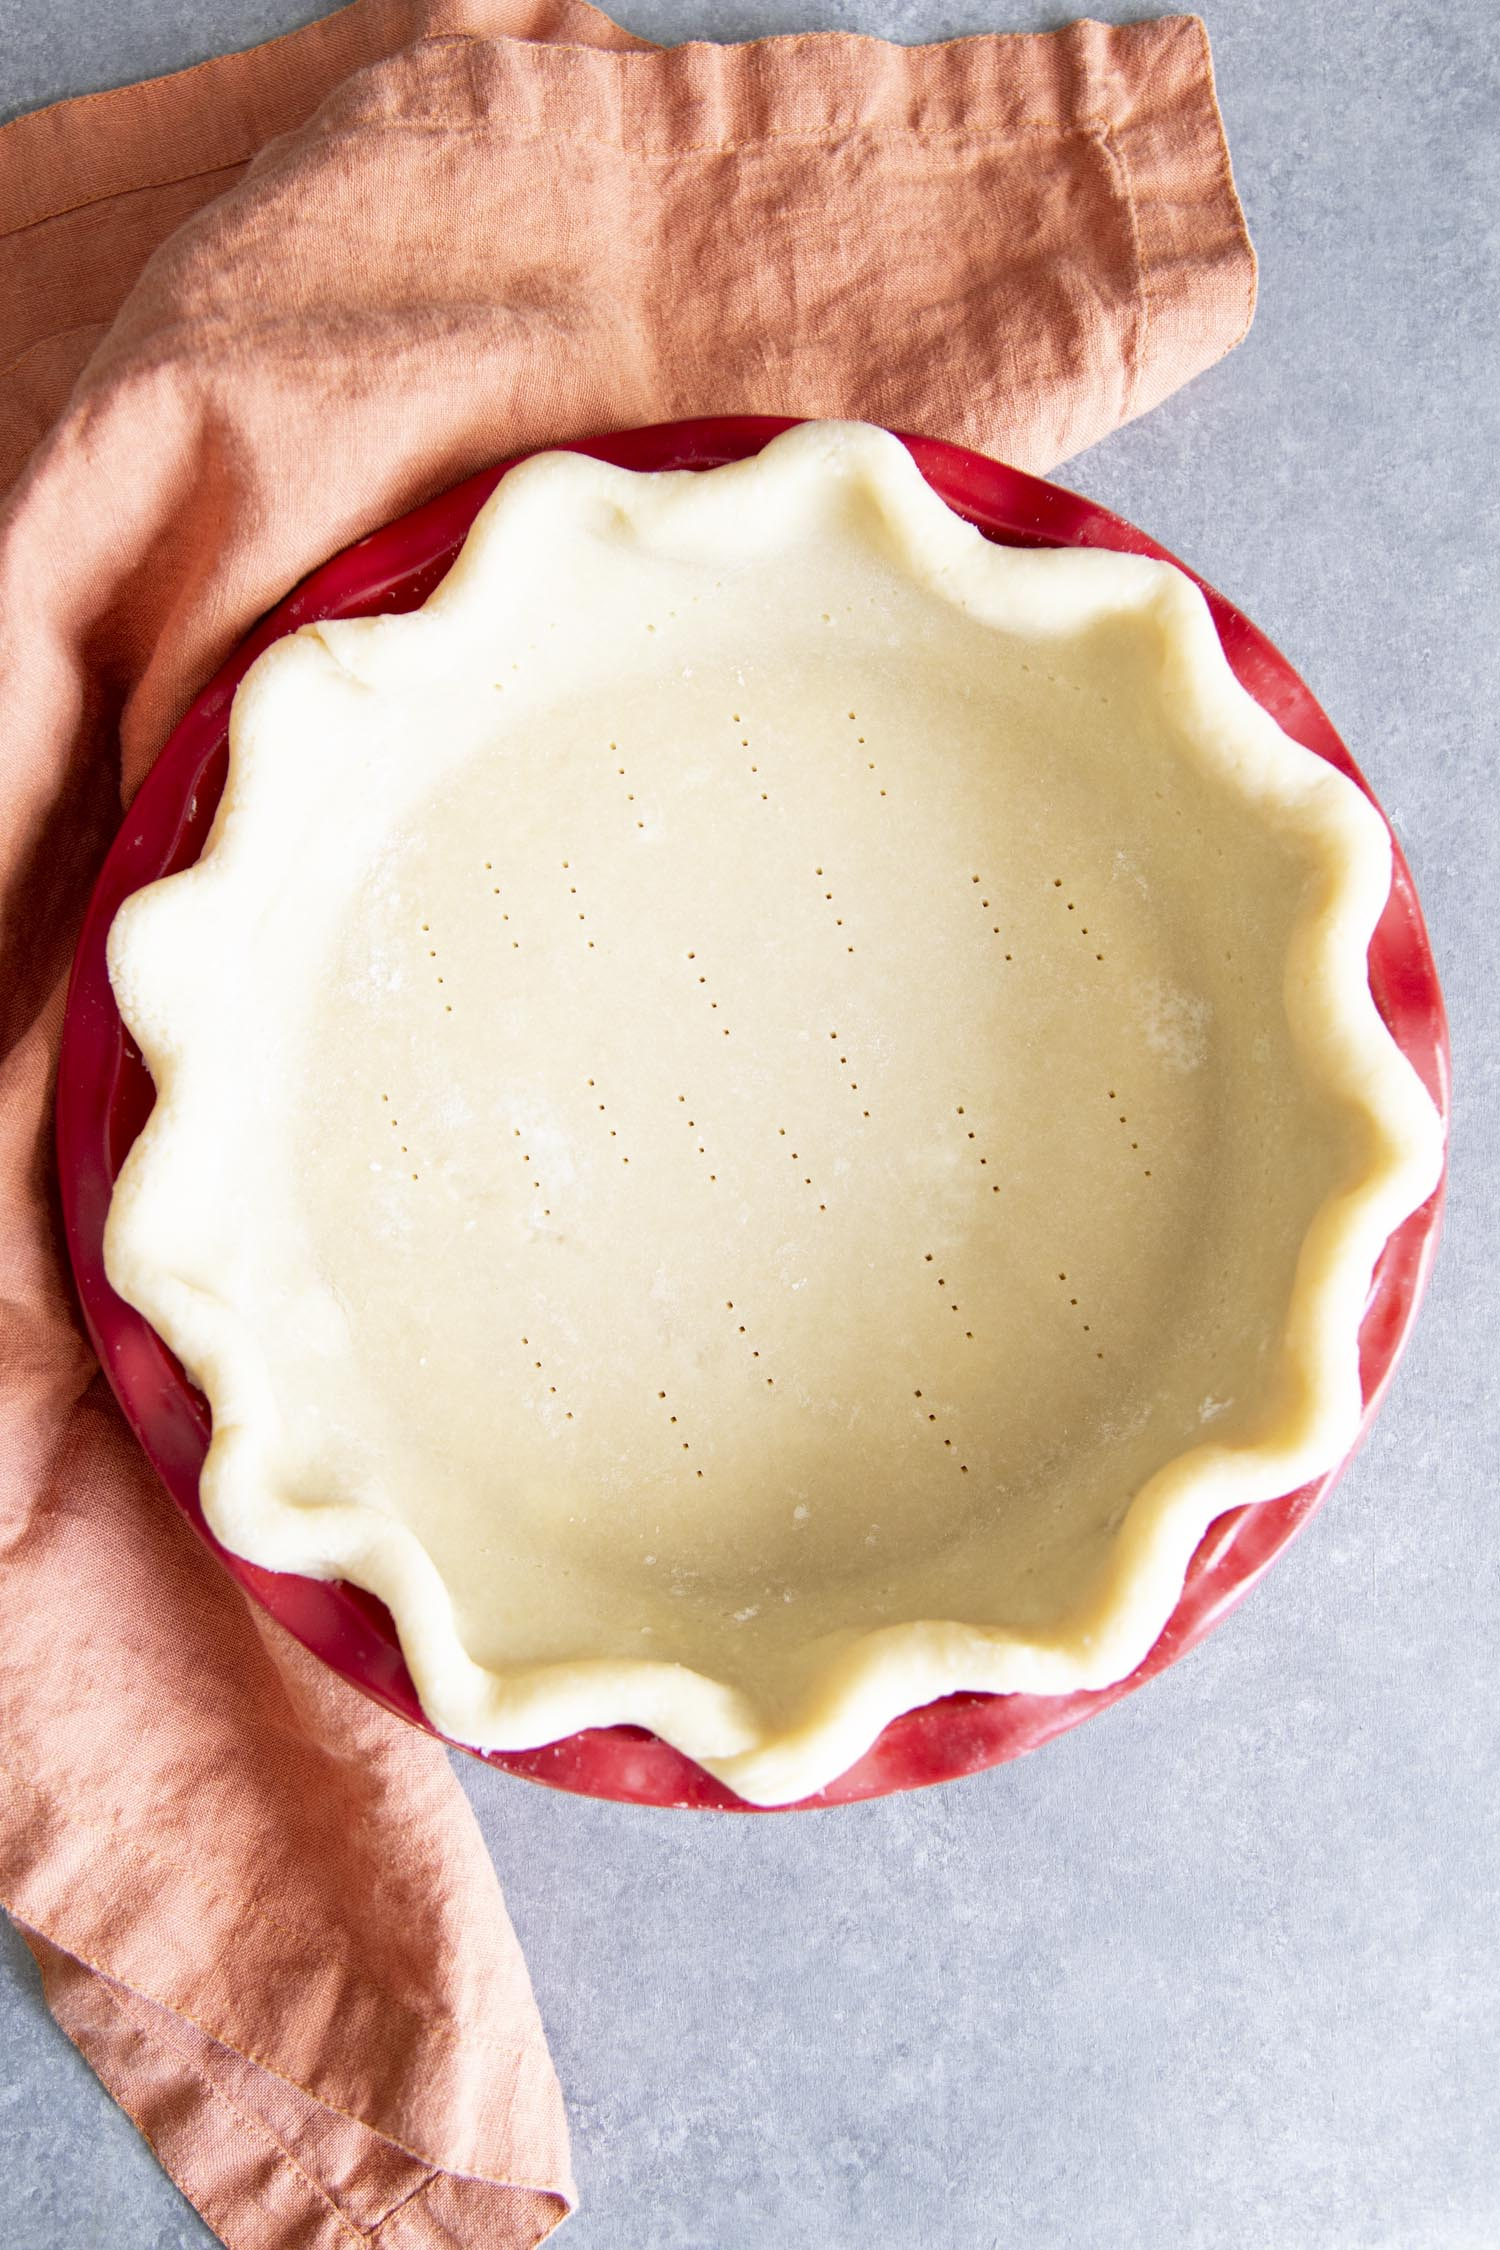 Preparing pie crust.